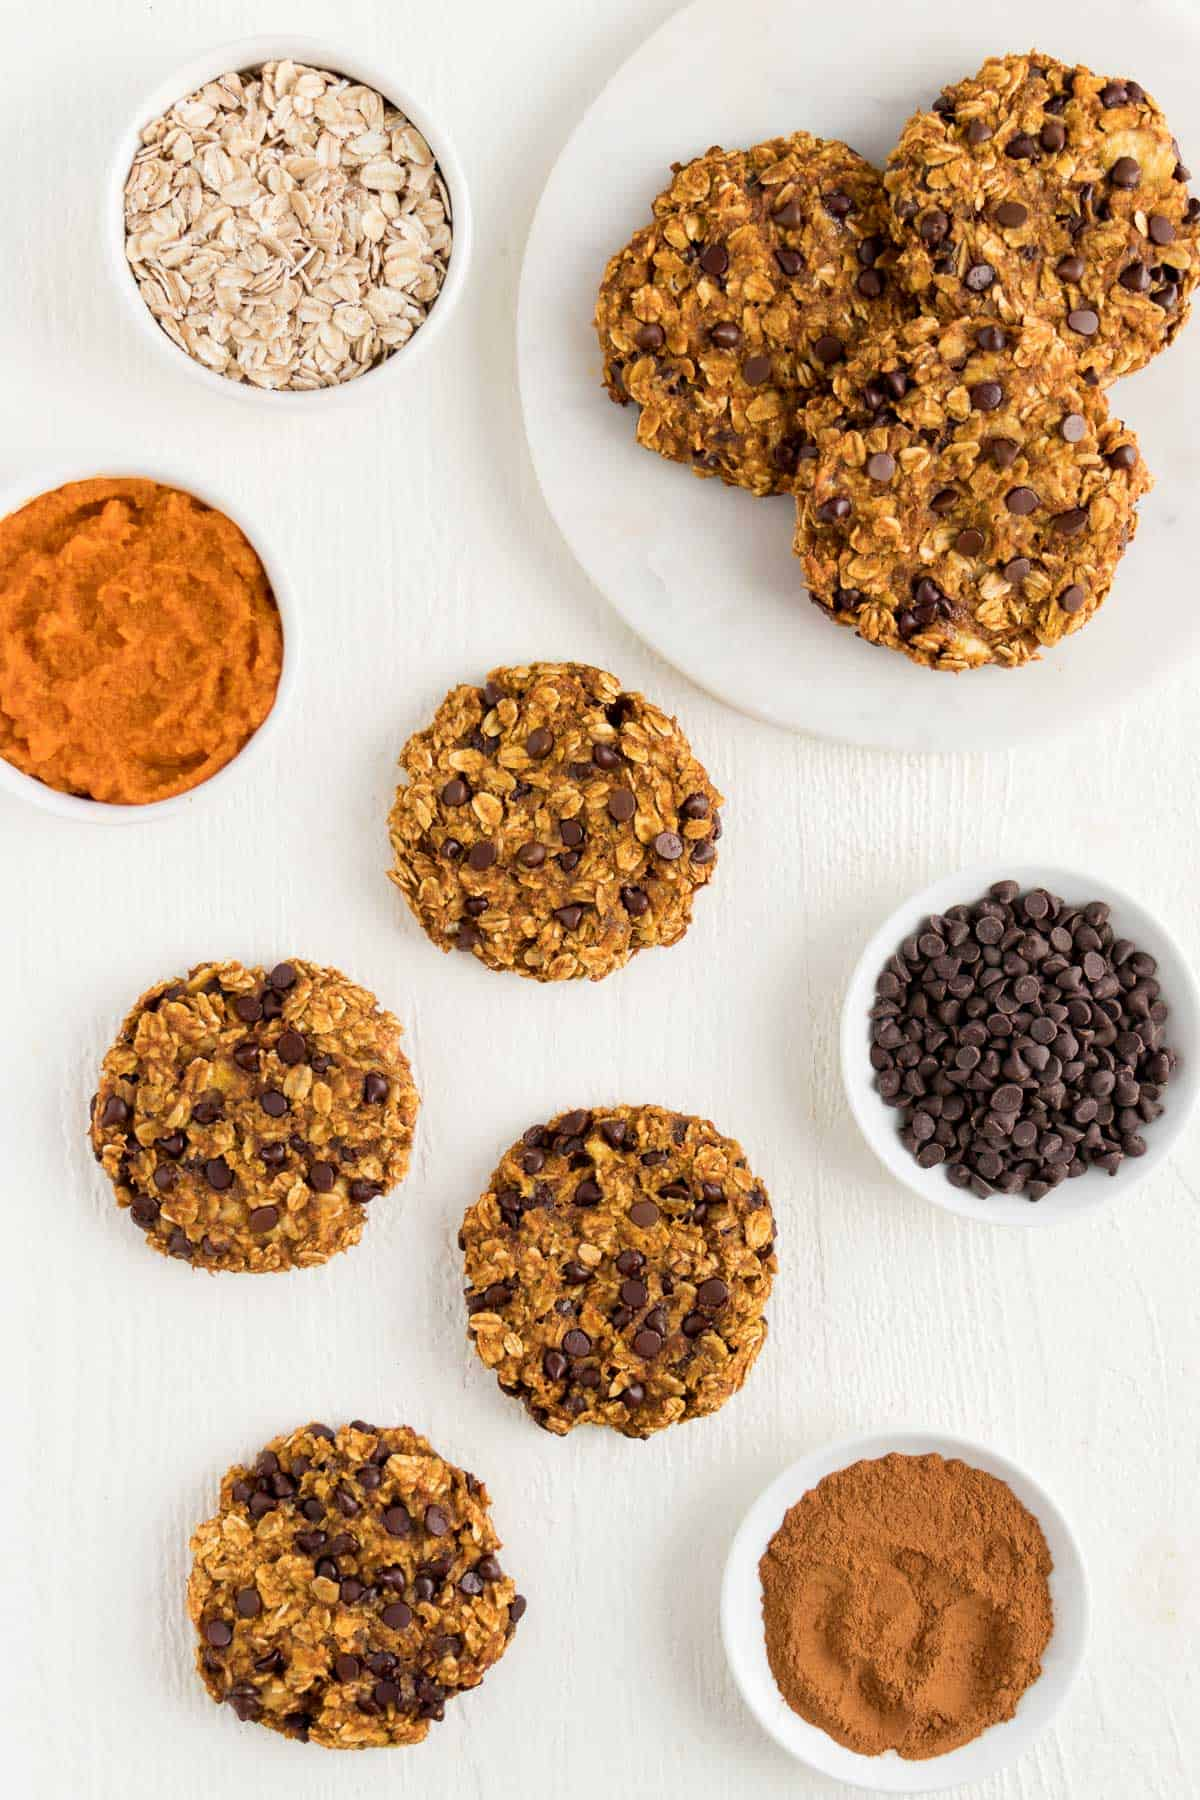 small white bowls containing rolled oats, pumpkin puree, mini chocolate chips, and ground cinnamon surrounded by vegan oatmeal cookies